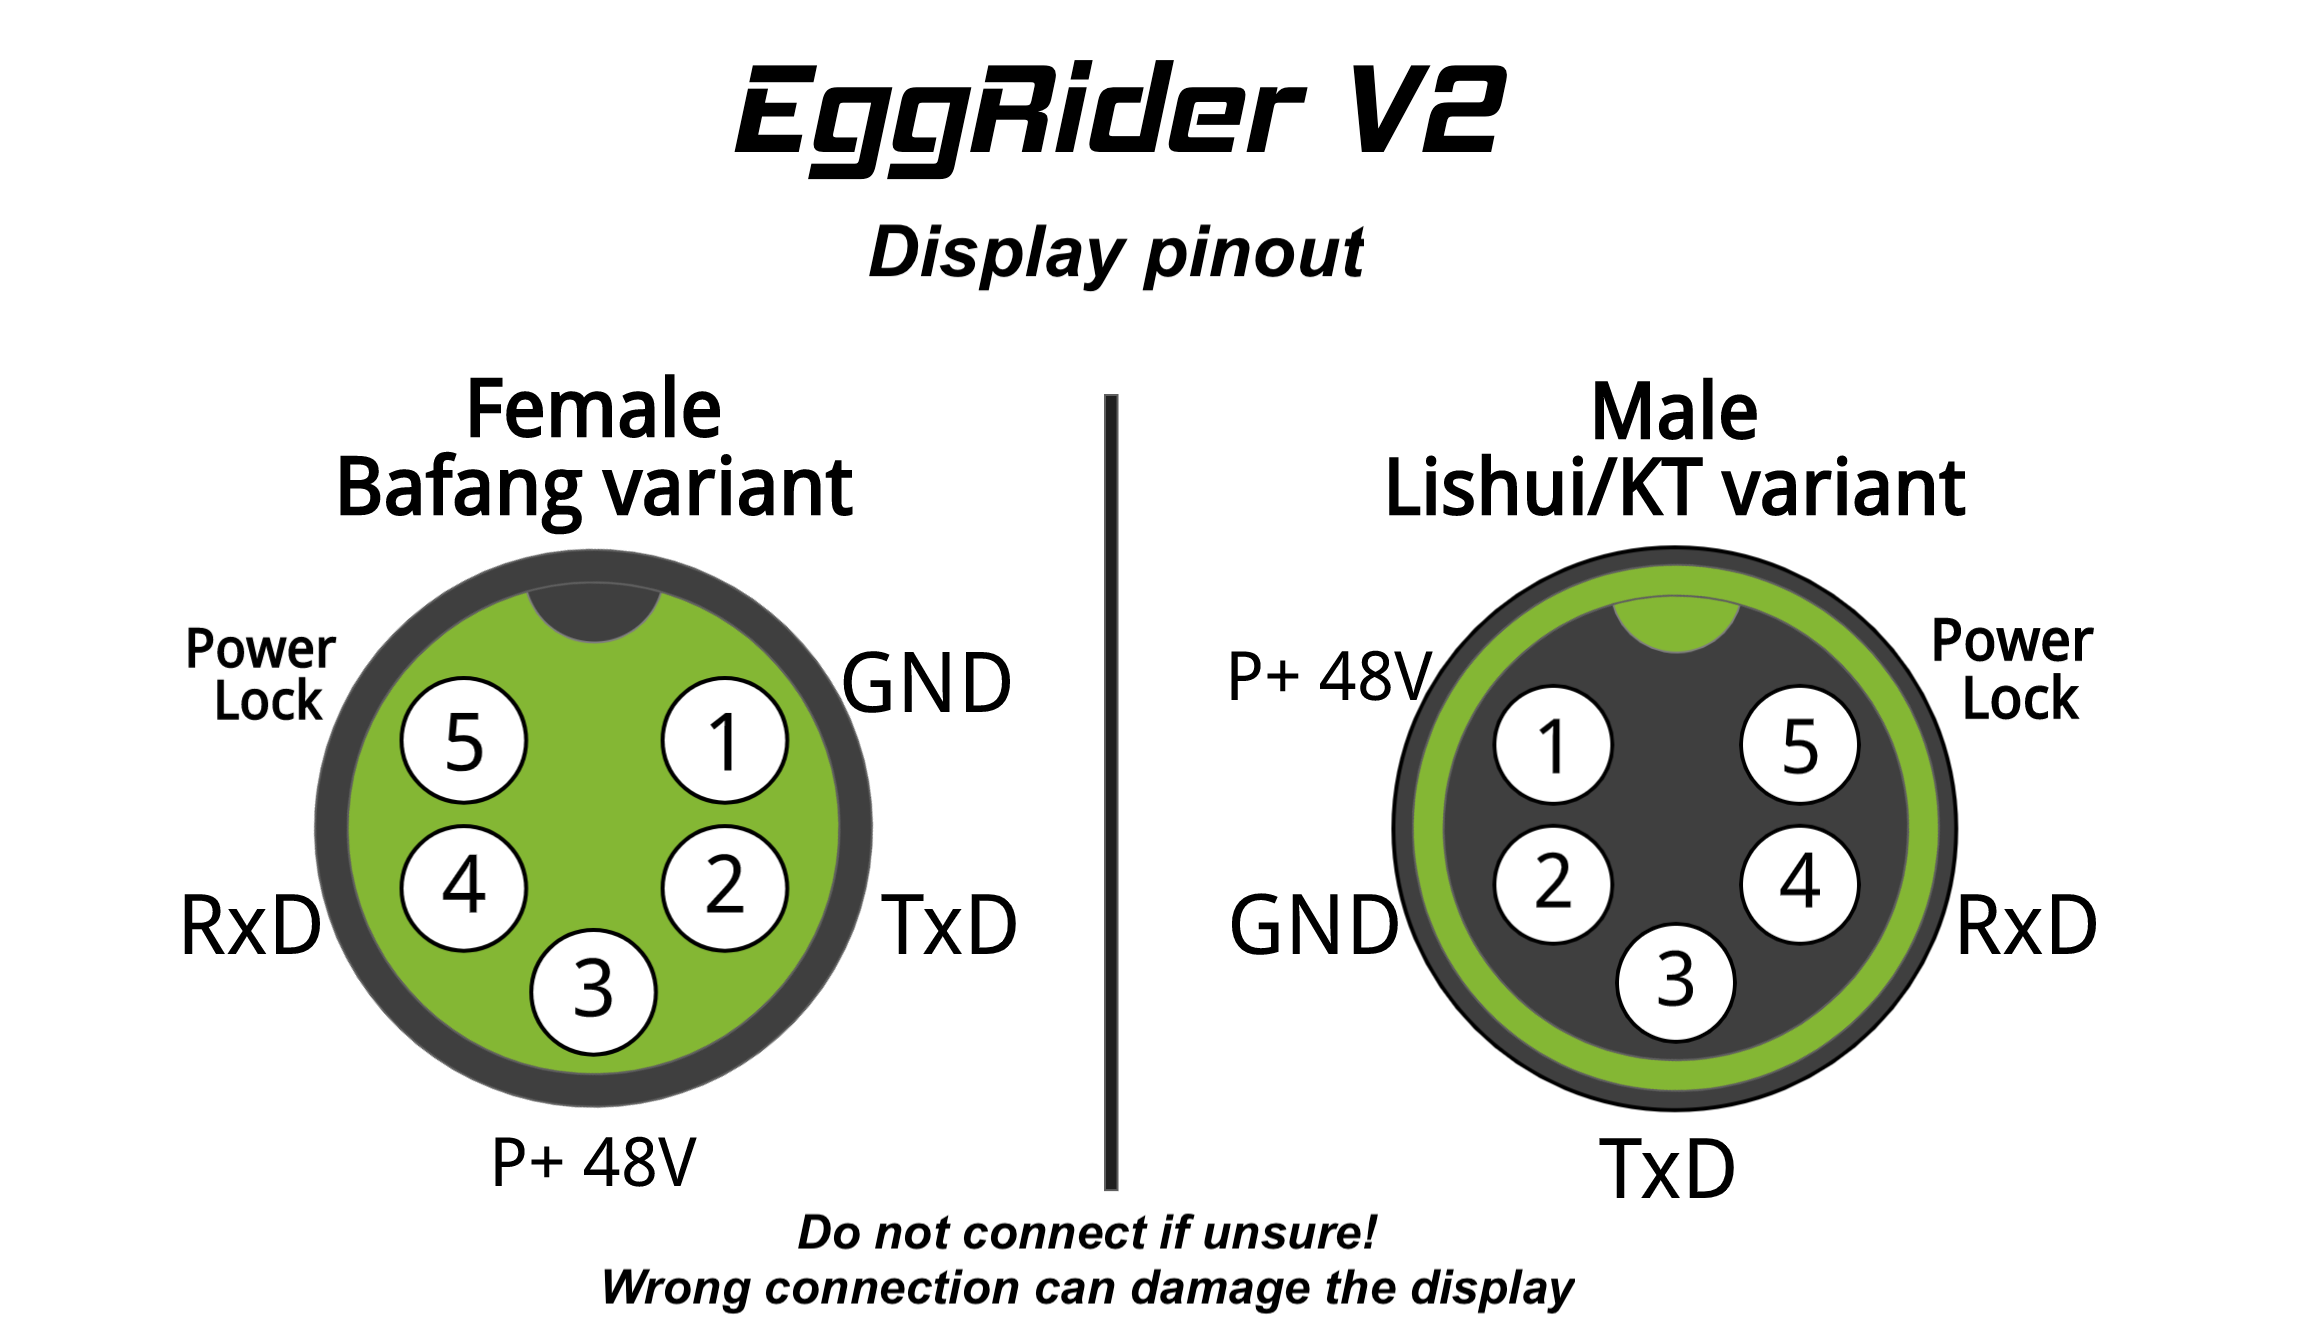 EggRider V2 display pinout